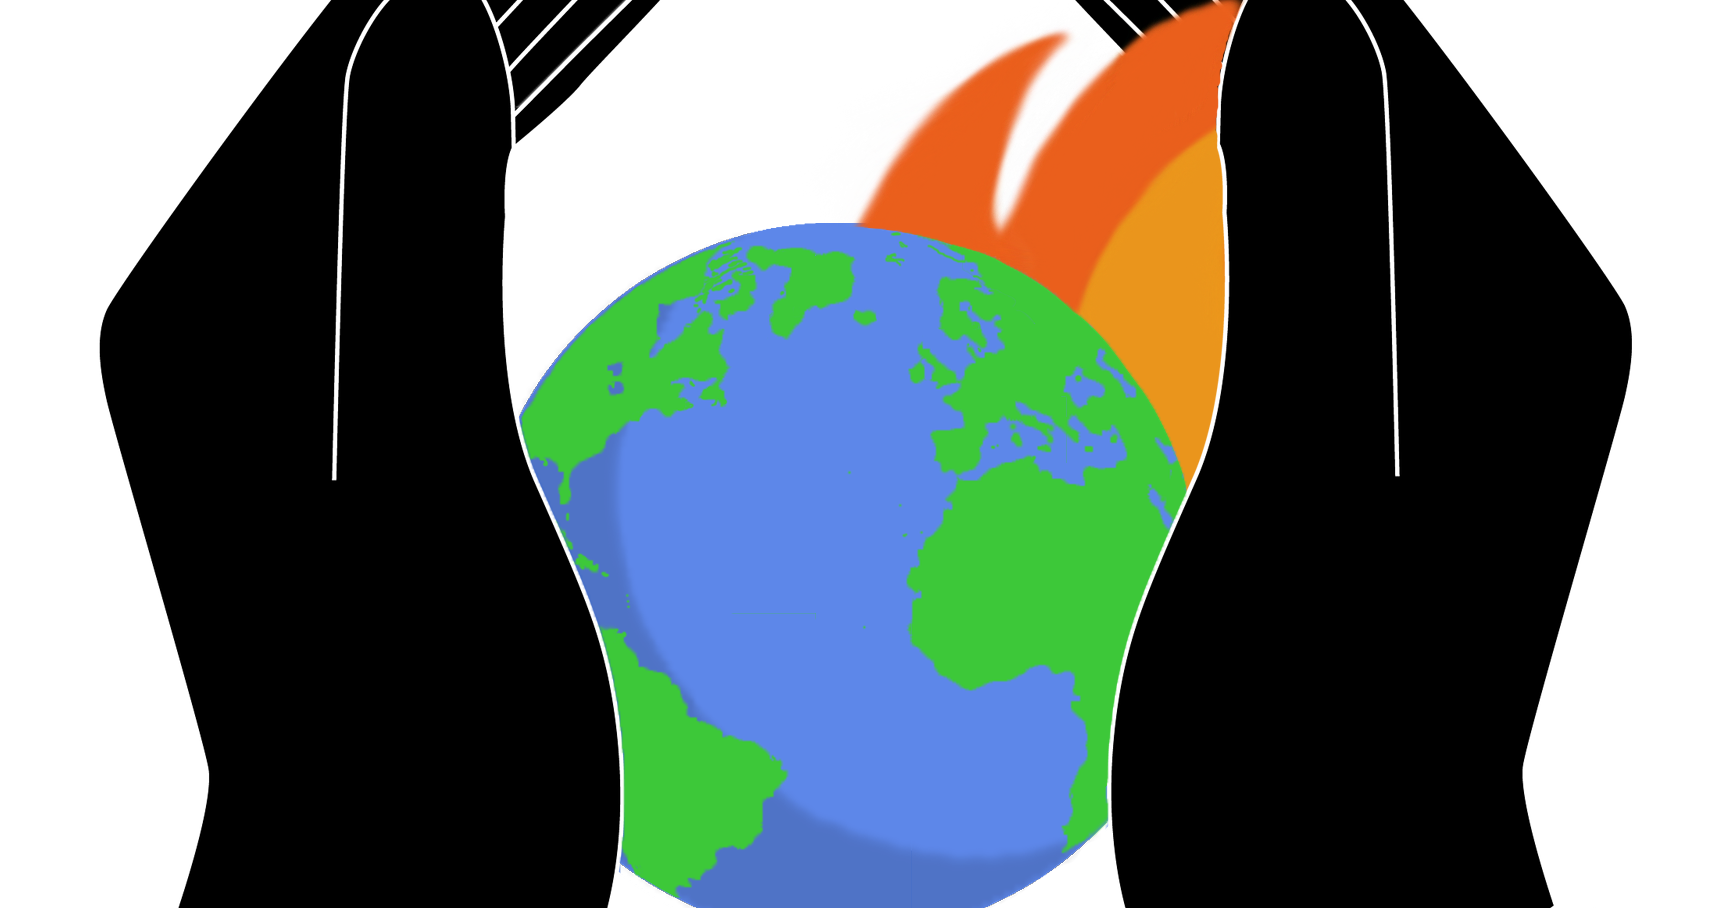 Climate_change_mitigation_icon (cropped)